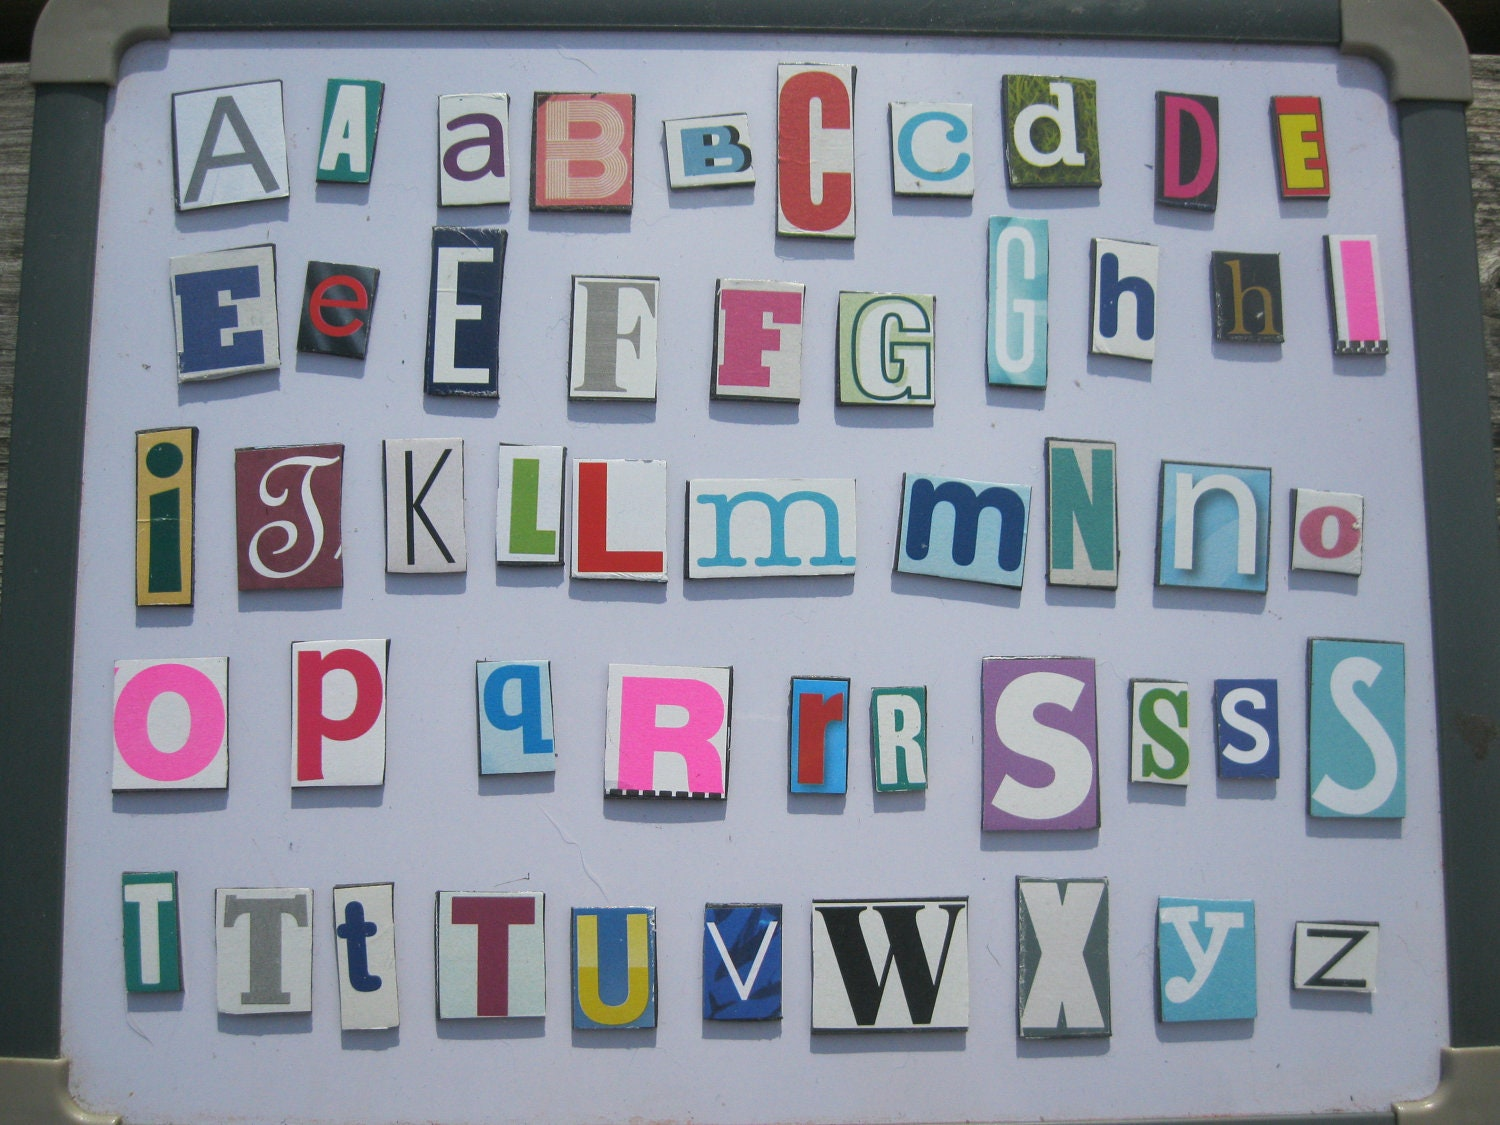 Alphabet fridge magnets by dandelionandclover on etsy for Letter fridge magnets game